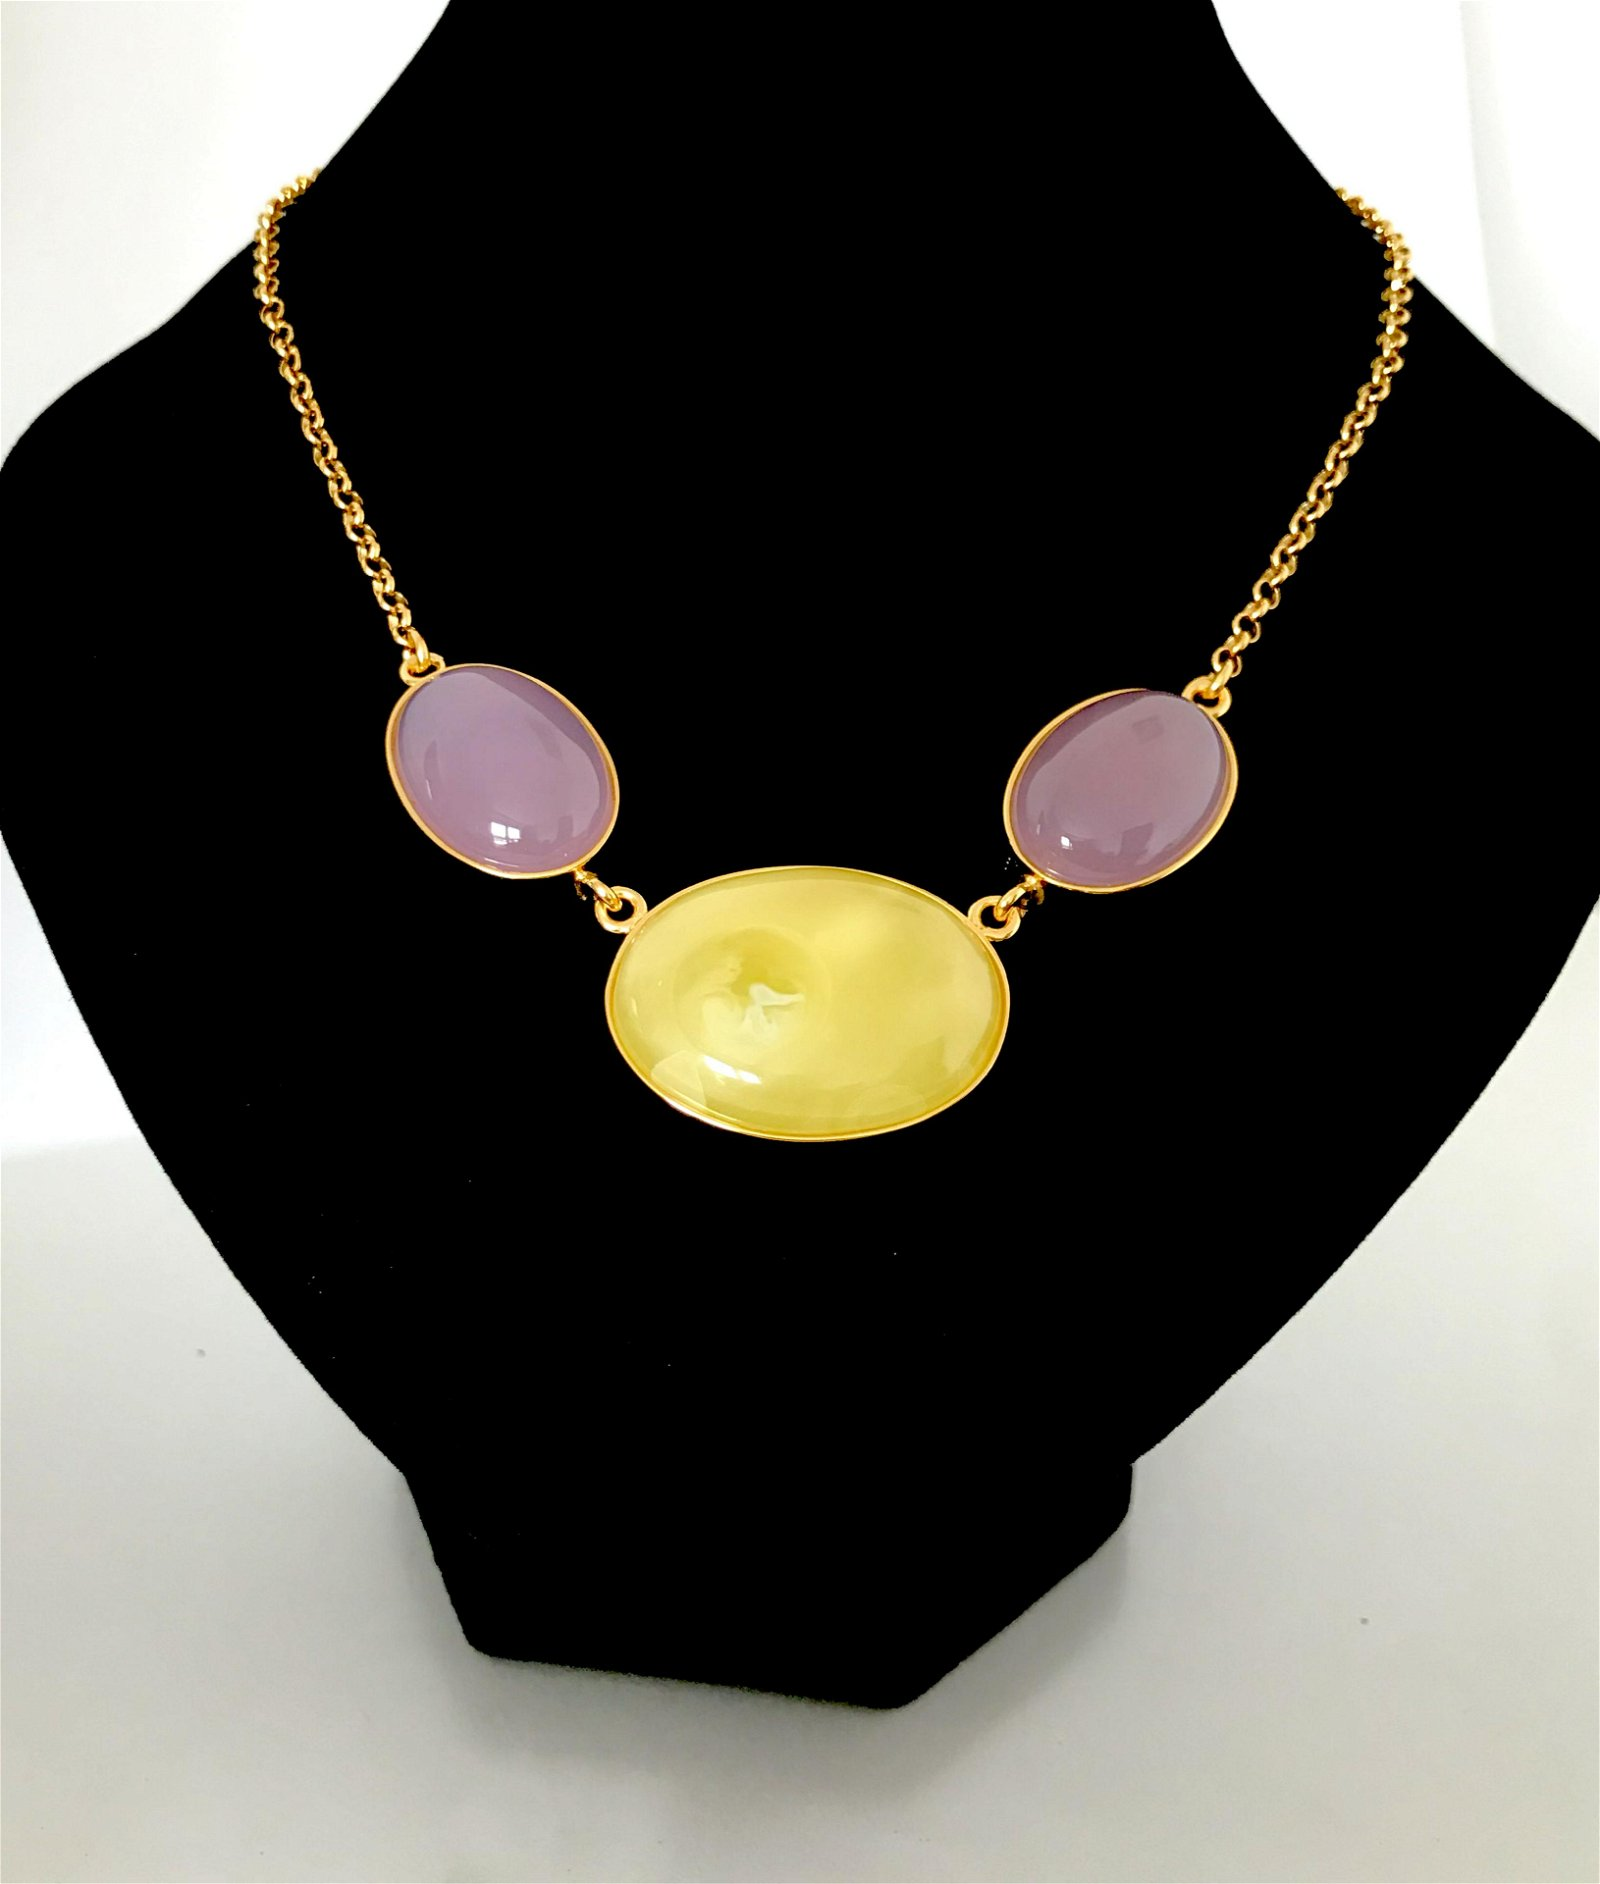 Necklace Goldplated Silver & Baltic amber, Rose quartz